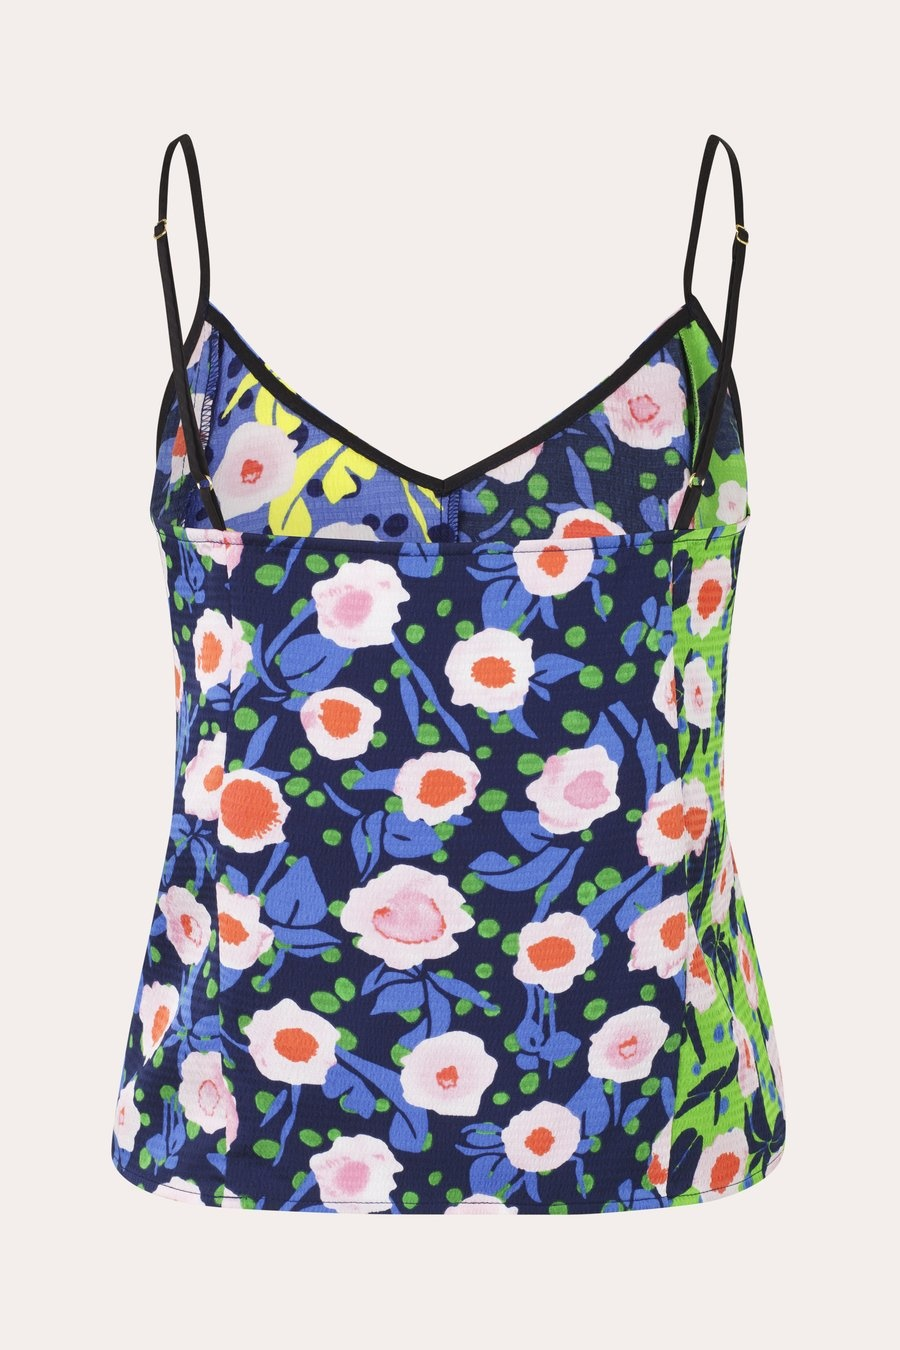 Penny textured Tank top-2